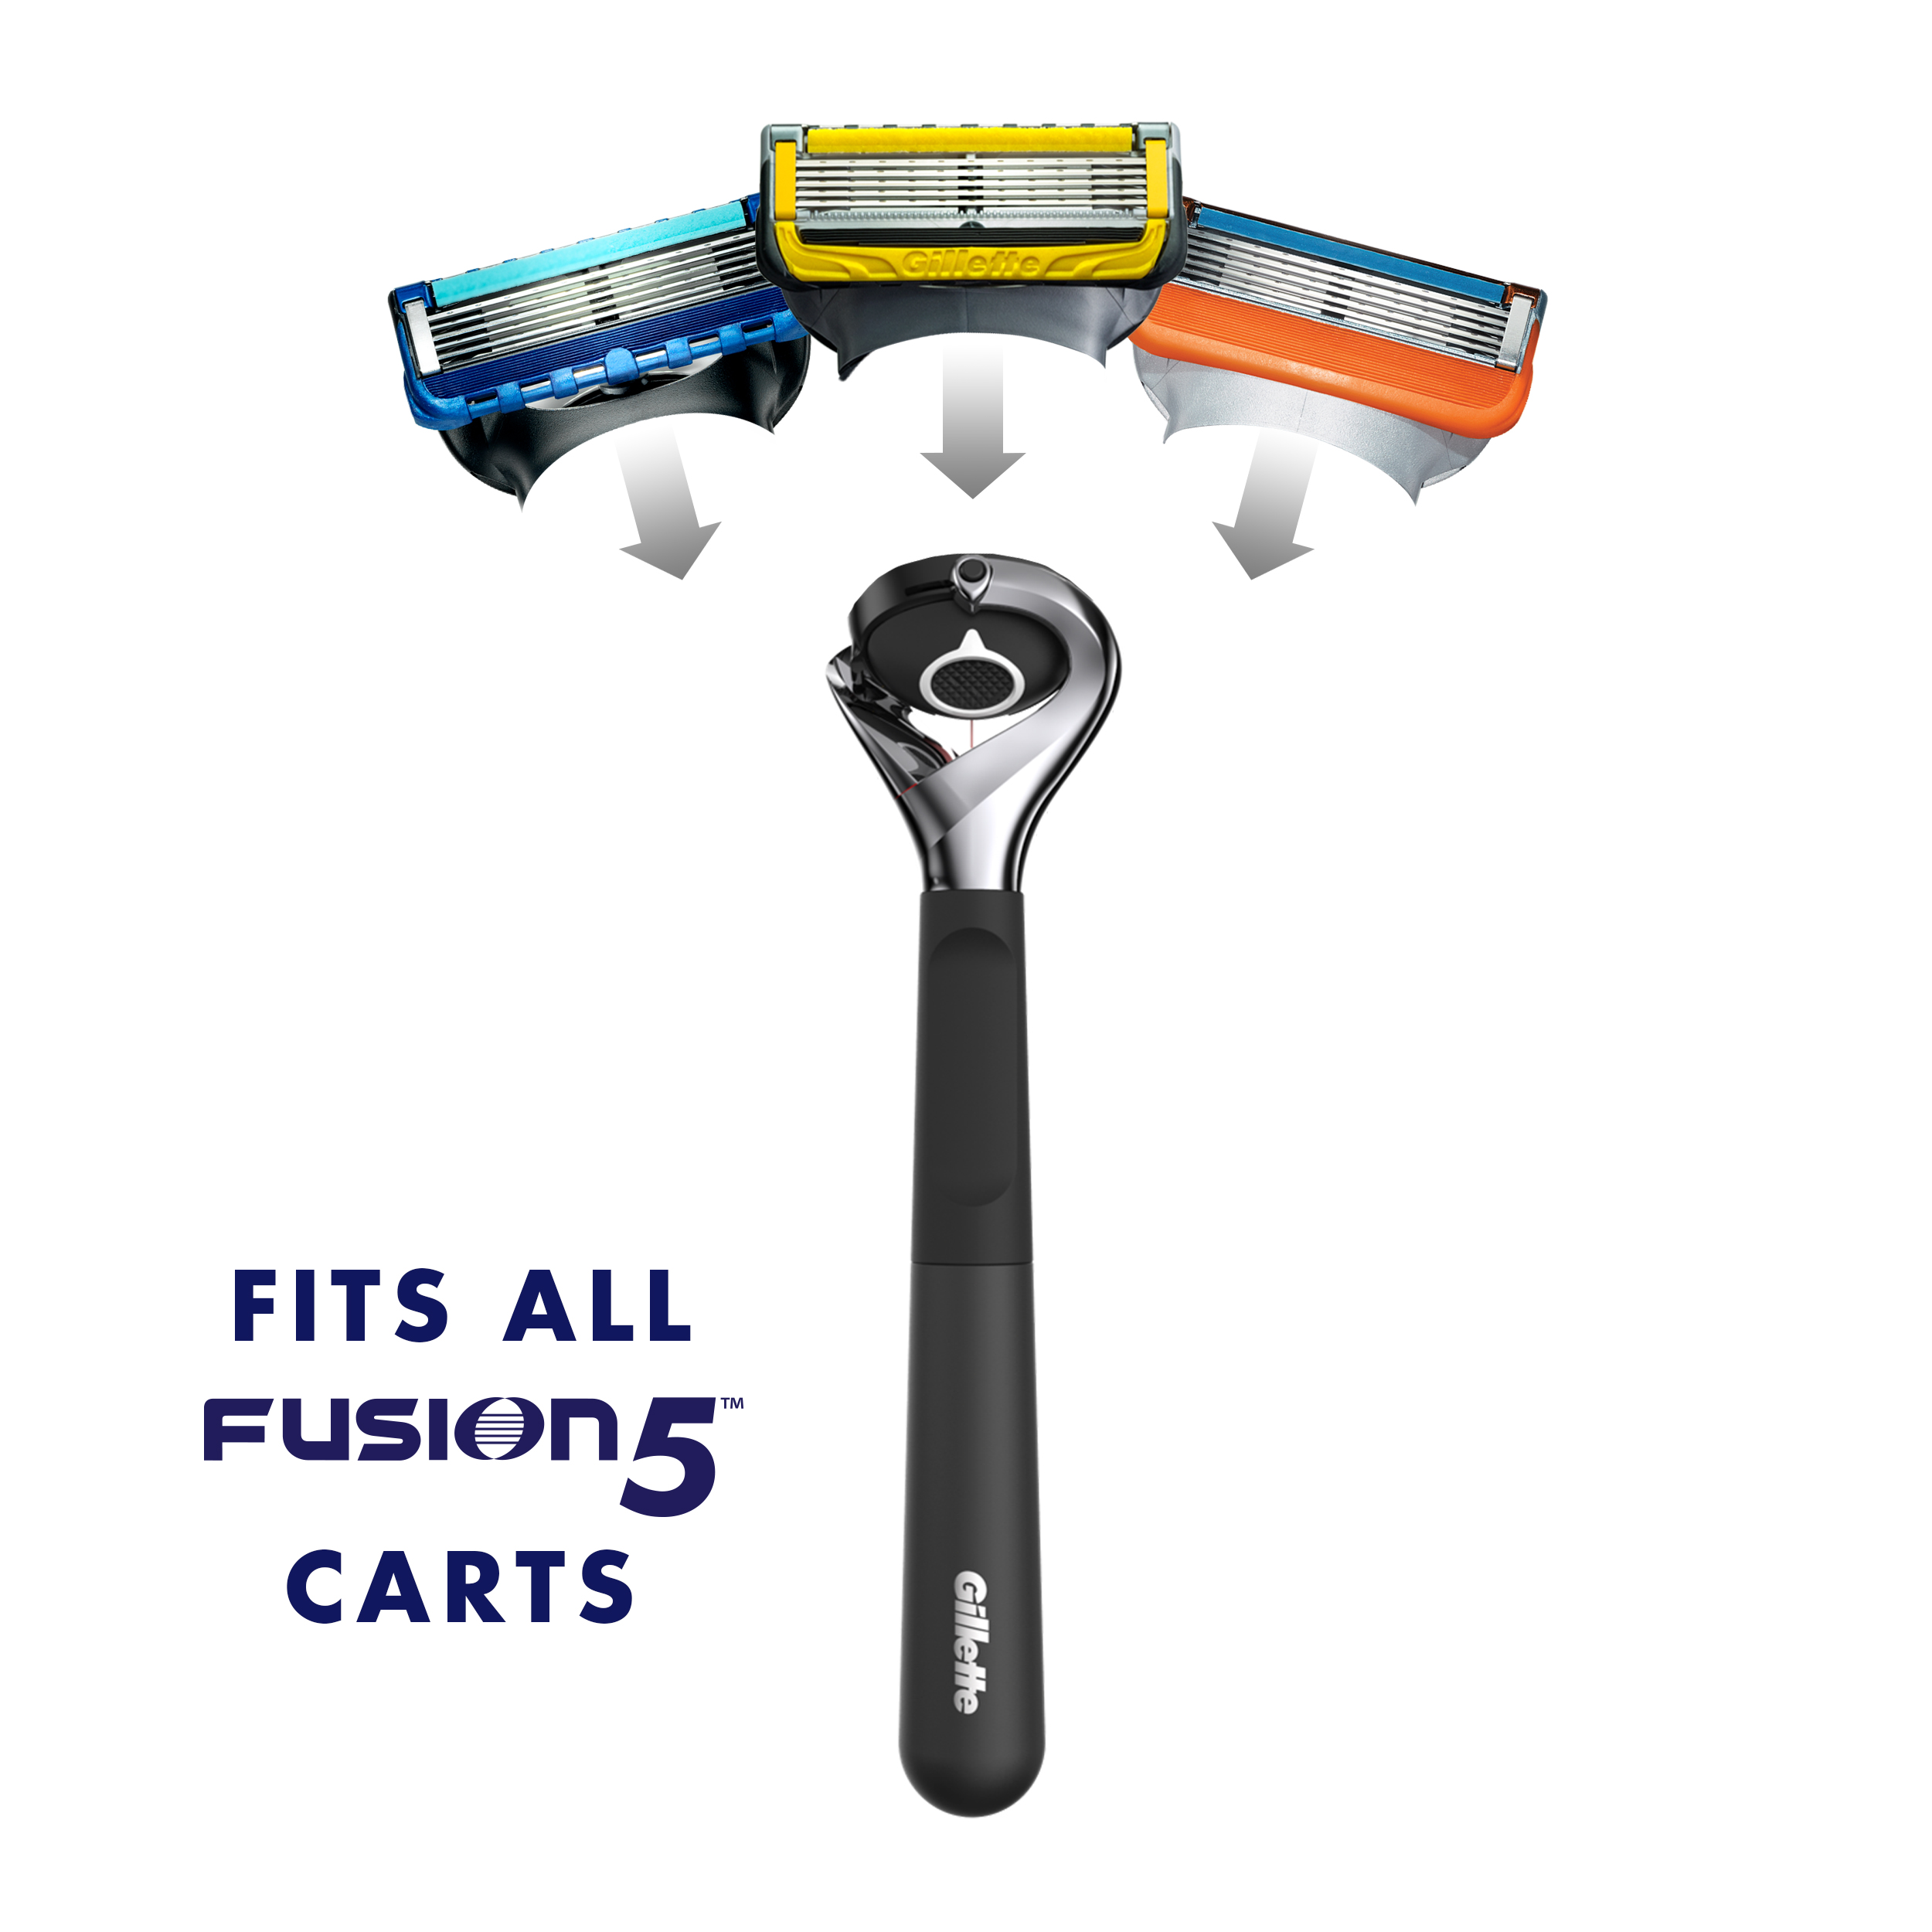 Gillette Limited Edition Fusion5 ProShield Razor Gift Pack - Walmart com